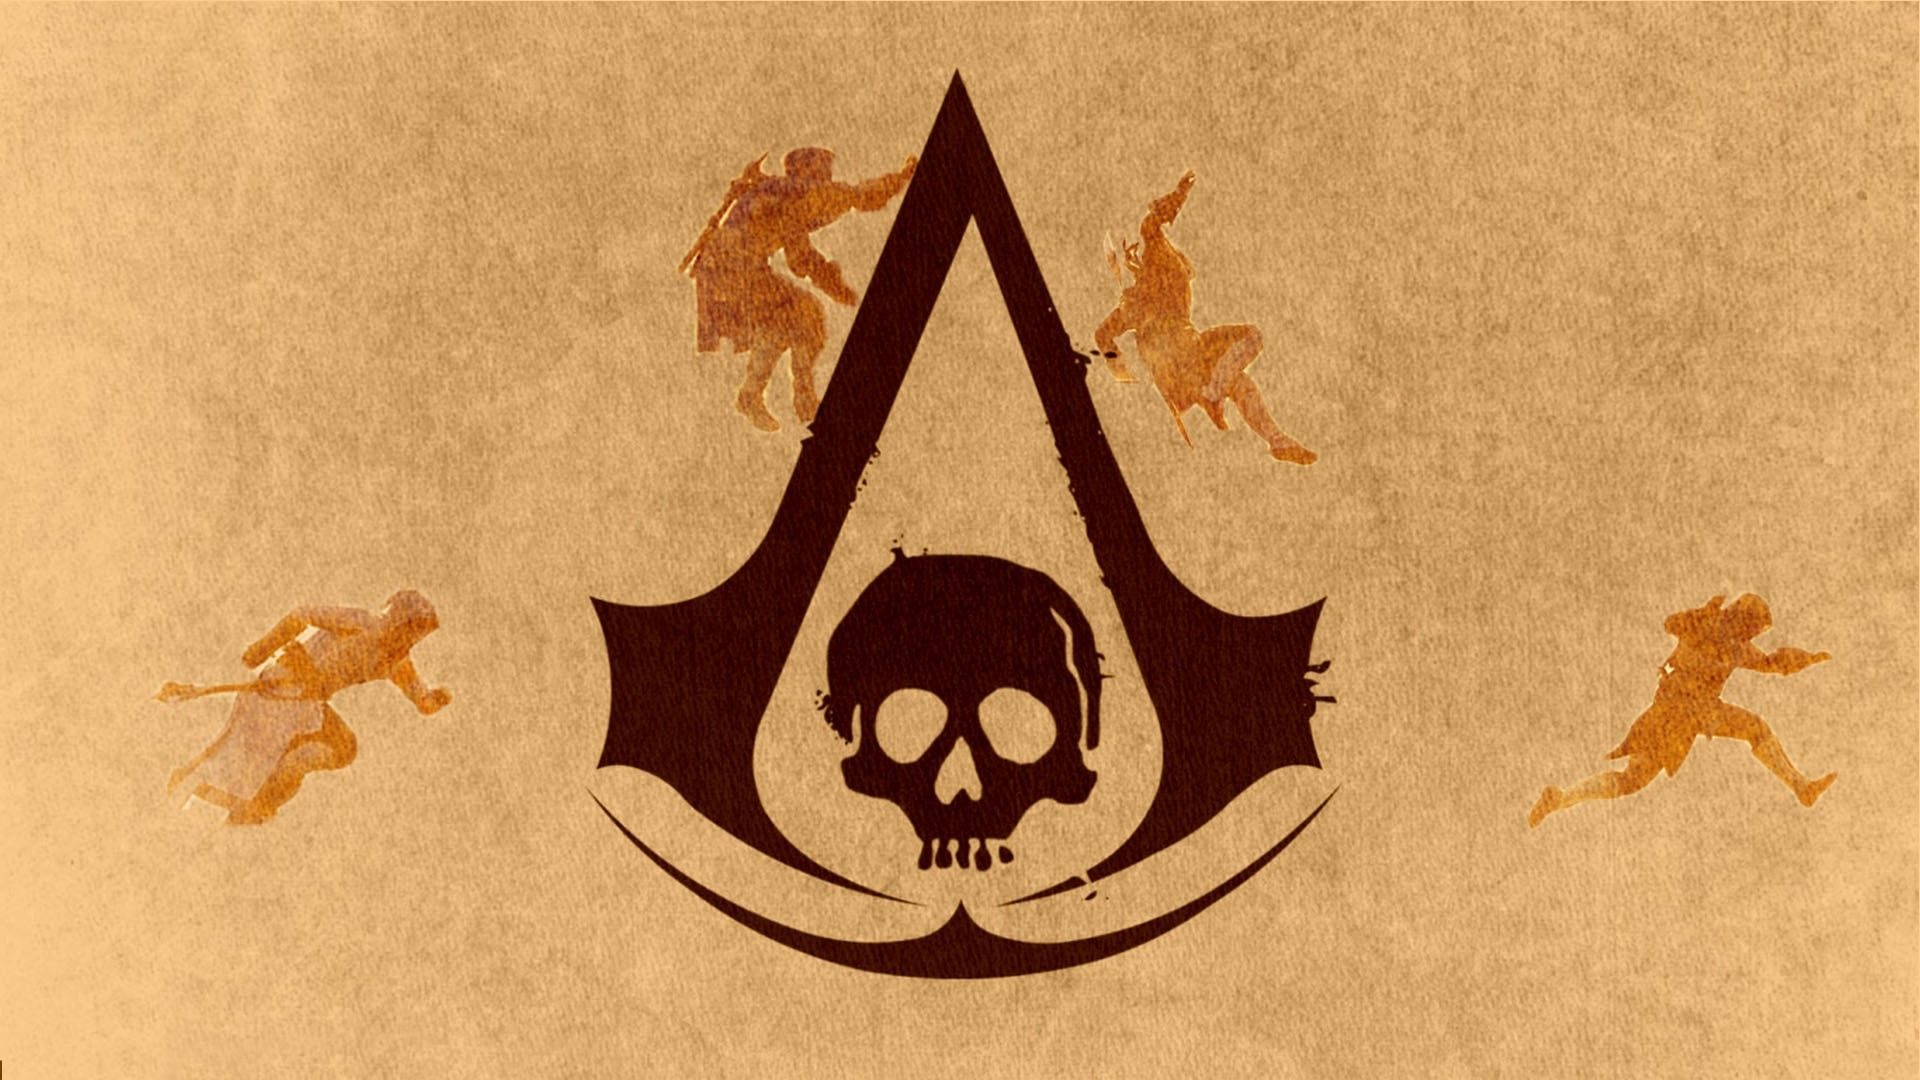 Assassins Creed, Video Games, Climbing Wallpapers Hd Desktop And Mobile